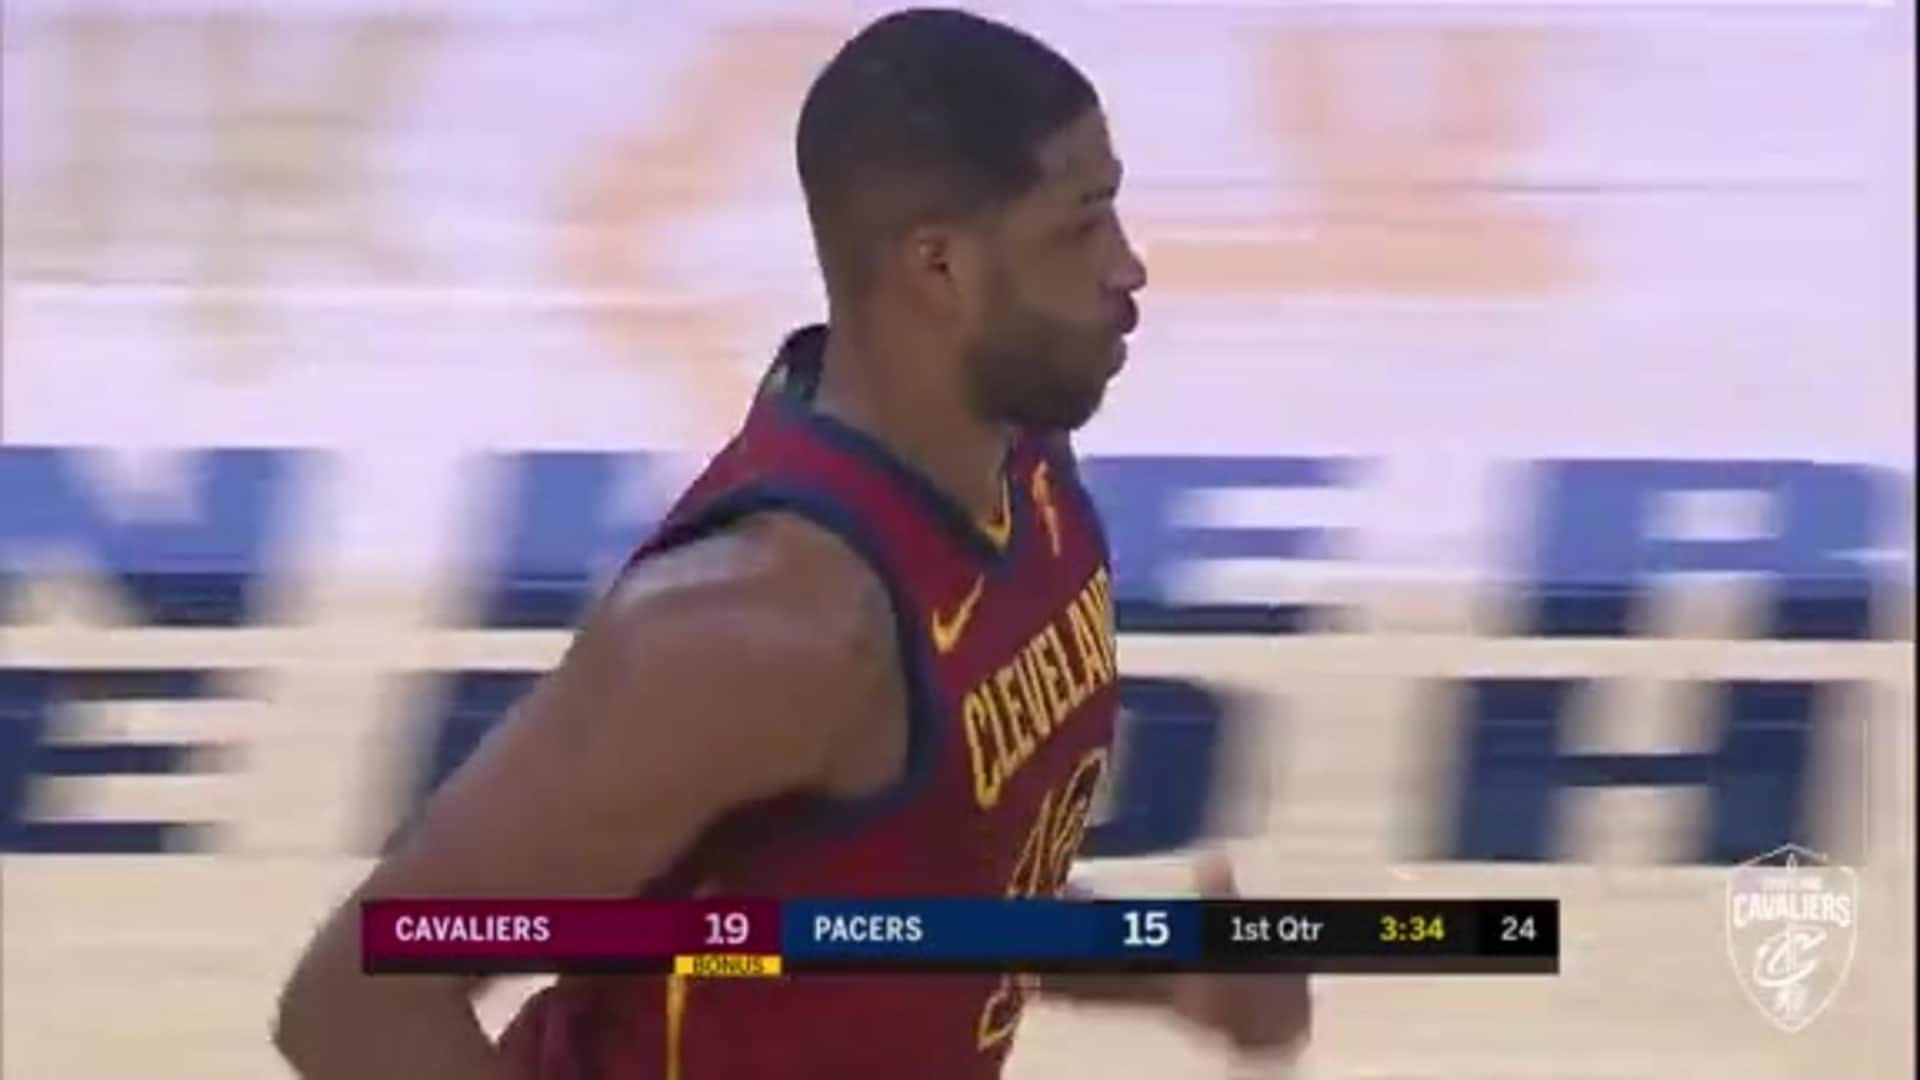 Tristan Thompson with the Flush